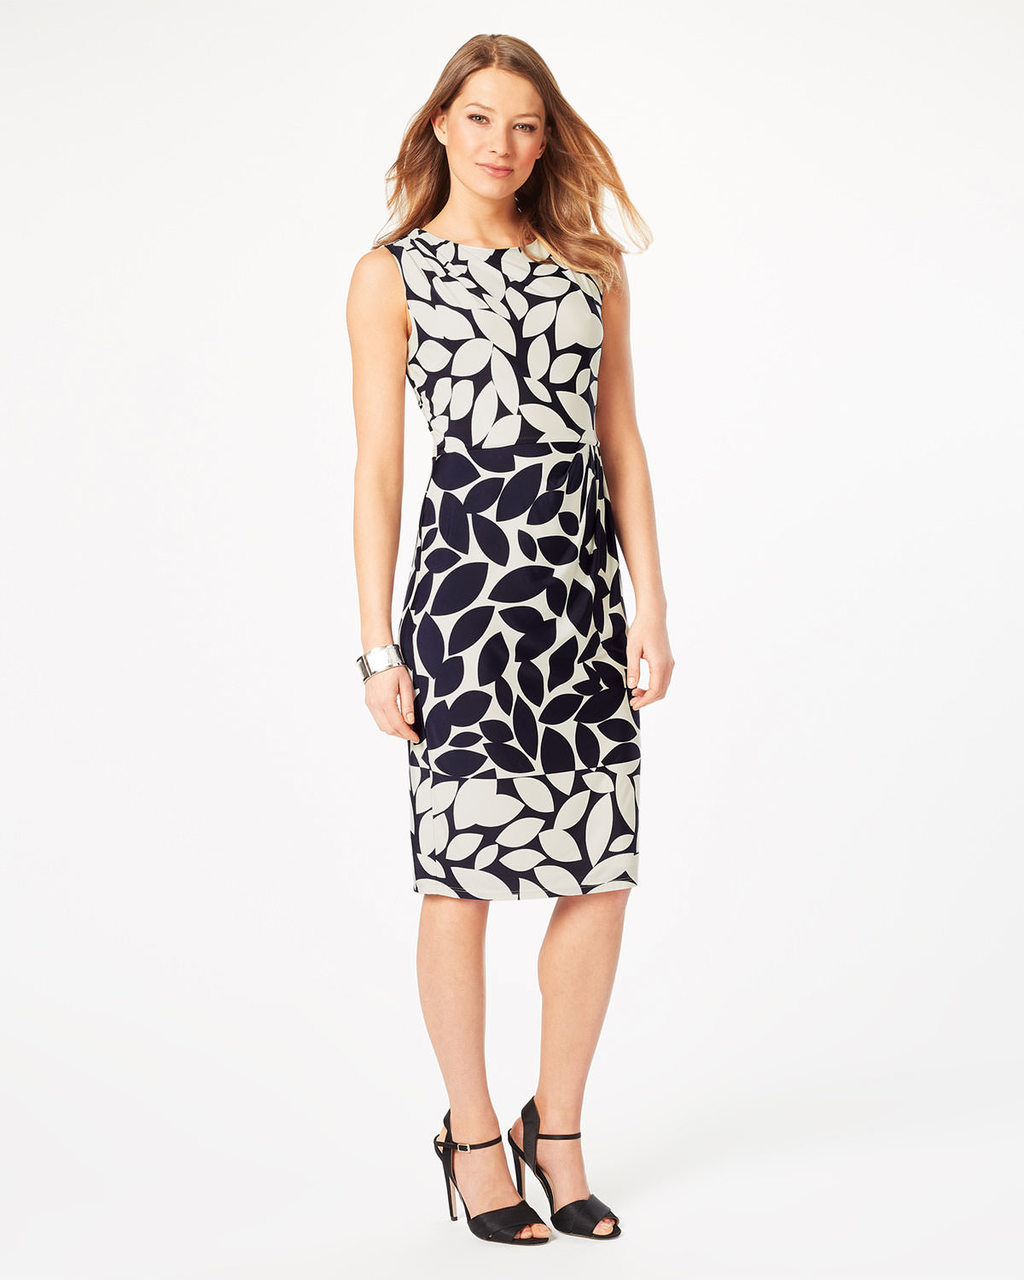 Leora Leaf Print Dress - style: shift; length: below the knee; sleeve style: sleeveless; predominant colour: white; secondary colour: navy; occasions: evening; fit: body skimming; fibres: polyester/polyamide - stretch; neckline: crew; sleeve length: sleeveless; texture group: jersey - clingy; pattern type: fabric; pattern size: big & busy; pattern: florals; multicoloured: multicoloured; season: s/s 2016; wardrobe: event